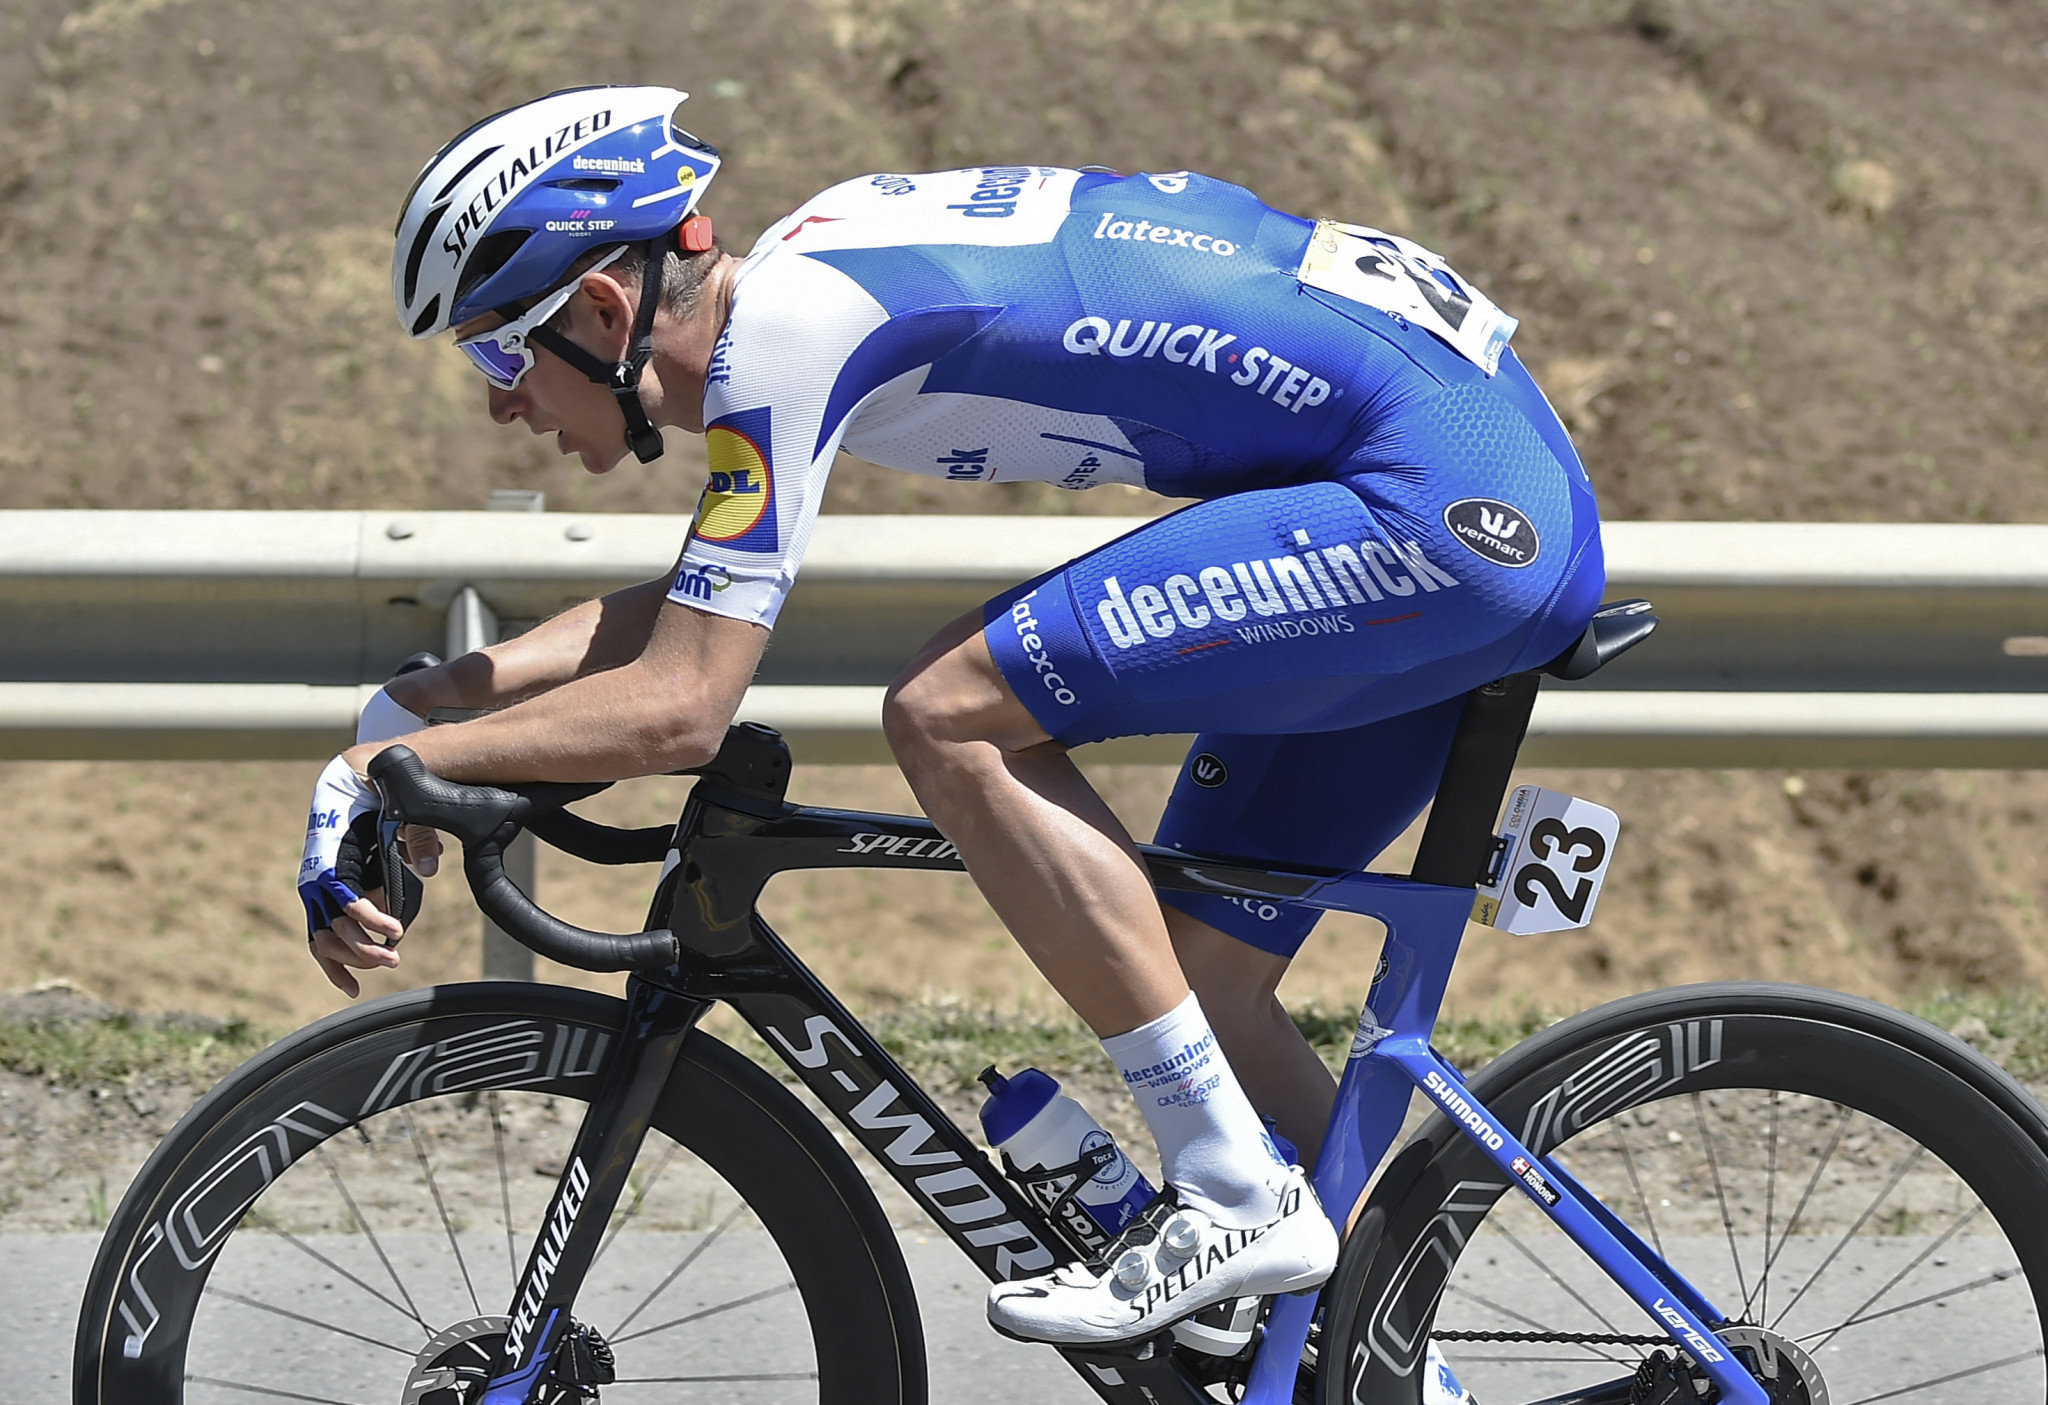 Deceuninck-QuickStep enjoy one-two on fifth stage of Tour of the Basque Country